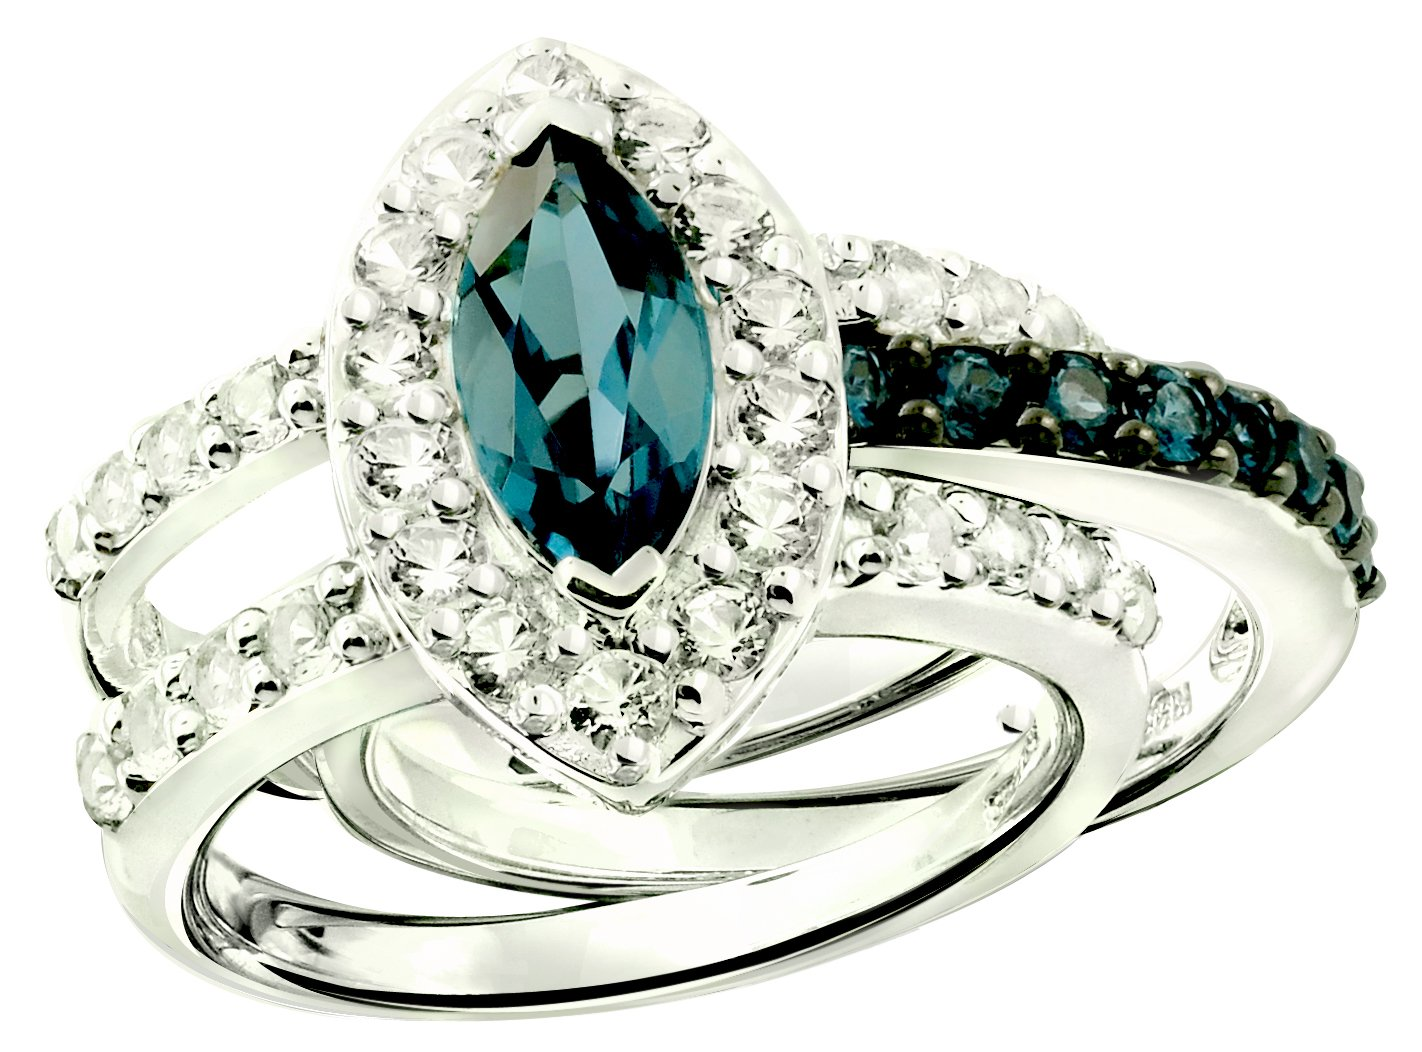 2.94 Cts London Blue Topaz, White Topaz Set of 2 Stack Rings in 925 Sterling Silver with Rhodium-Plated (6)